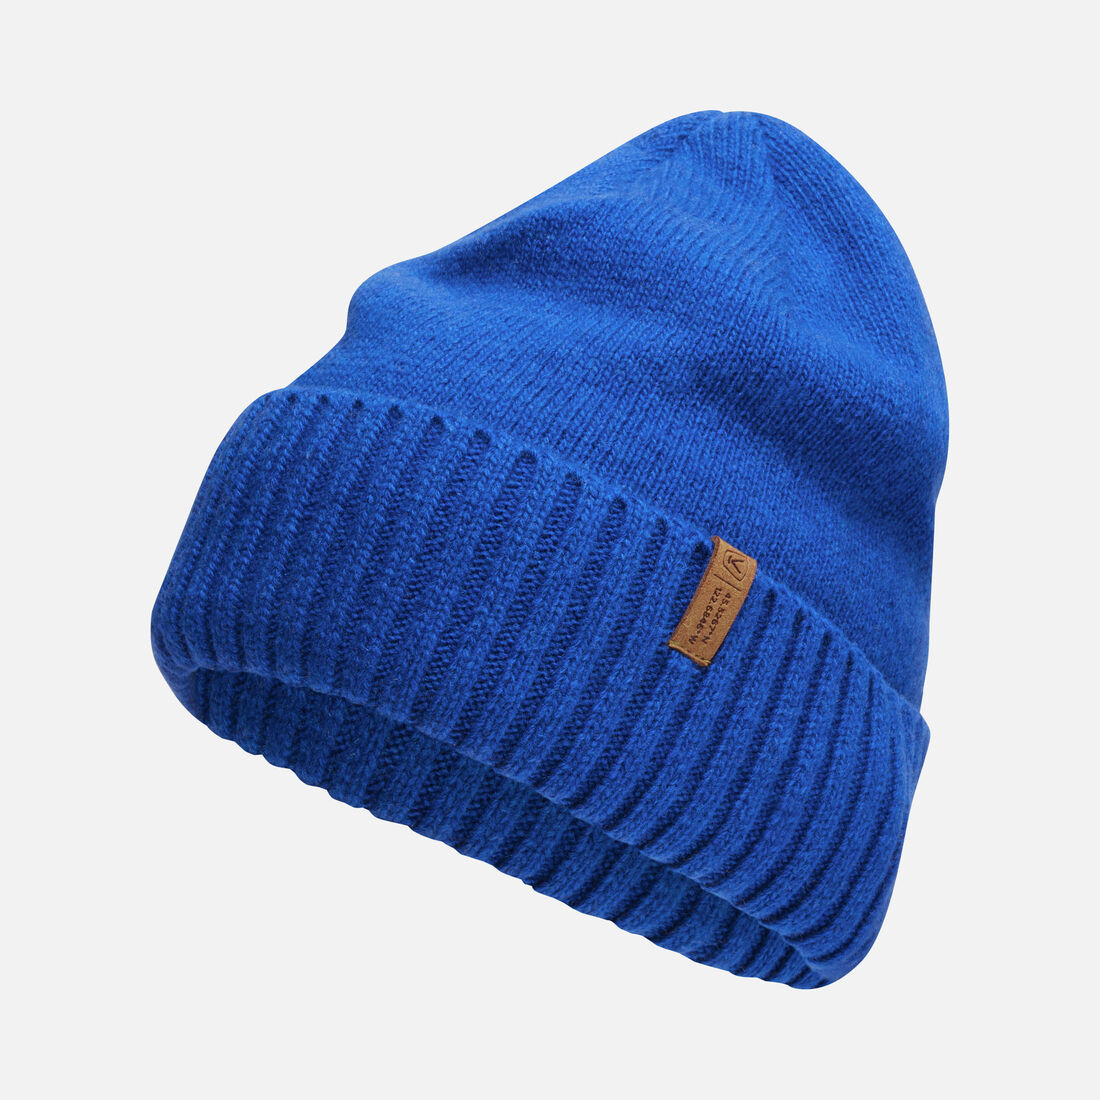 Locale Beanie in Brilliant Blue - large view.